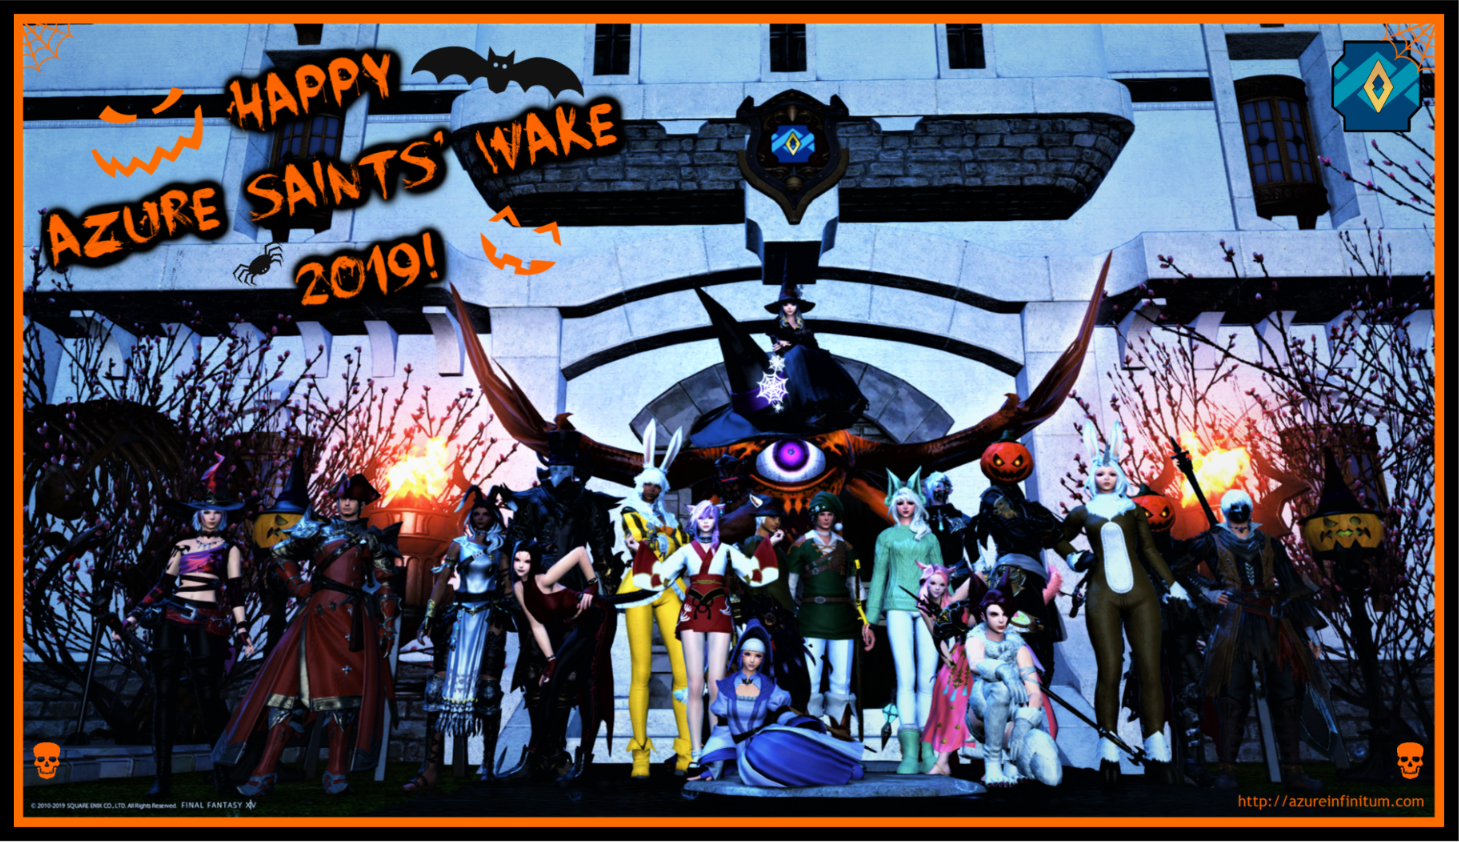 AzureSaints'Wake2019